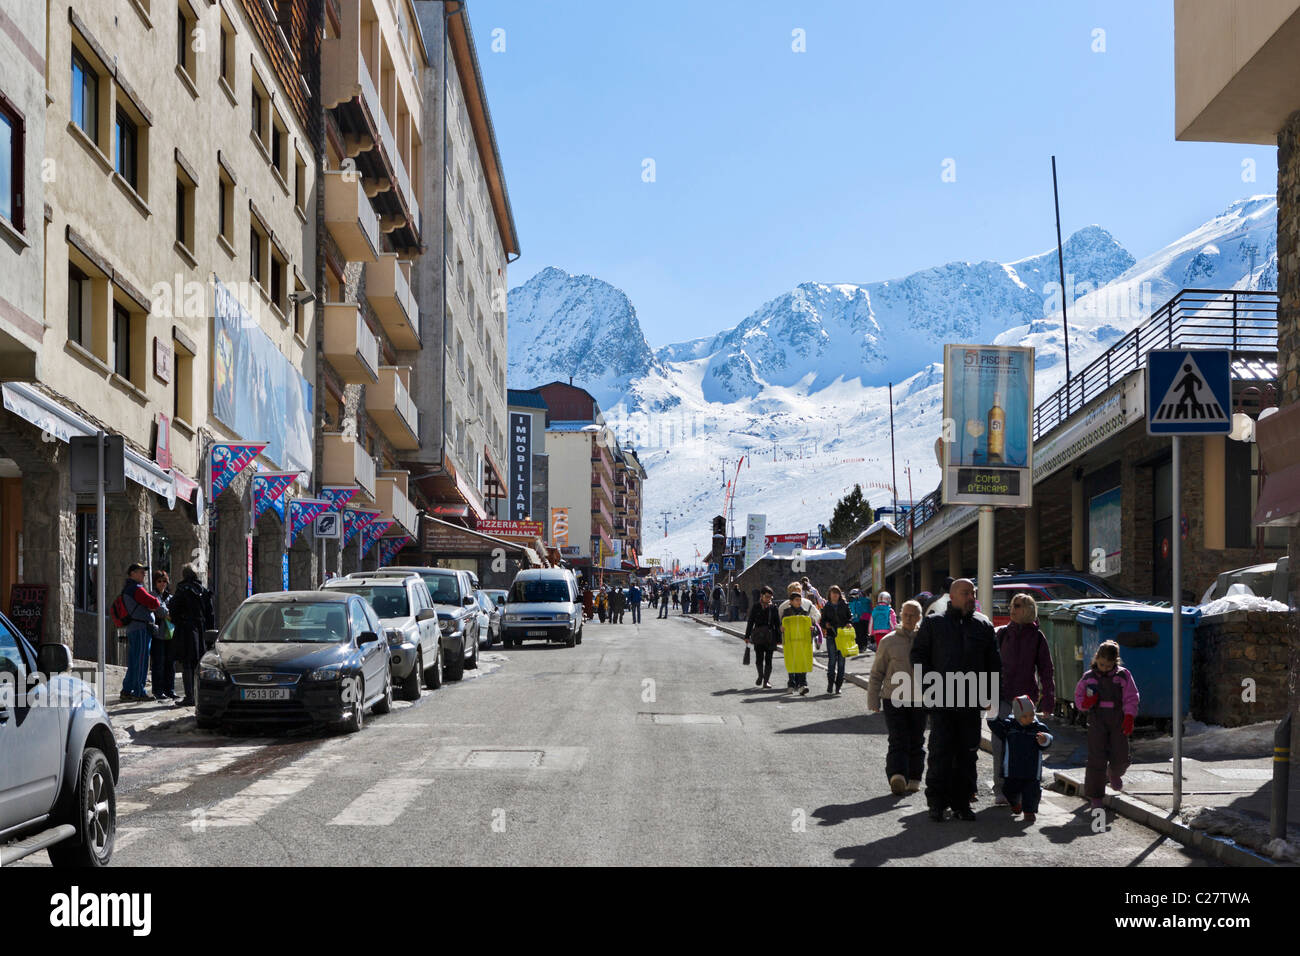 Centre of the resort of Pas de la Casa looking towards the slopes, Grandvalira Ski Area, Andorra - Stock Image